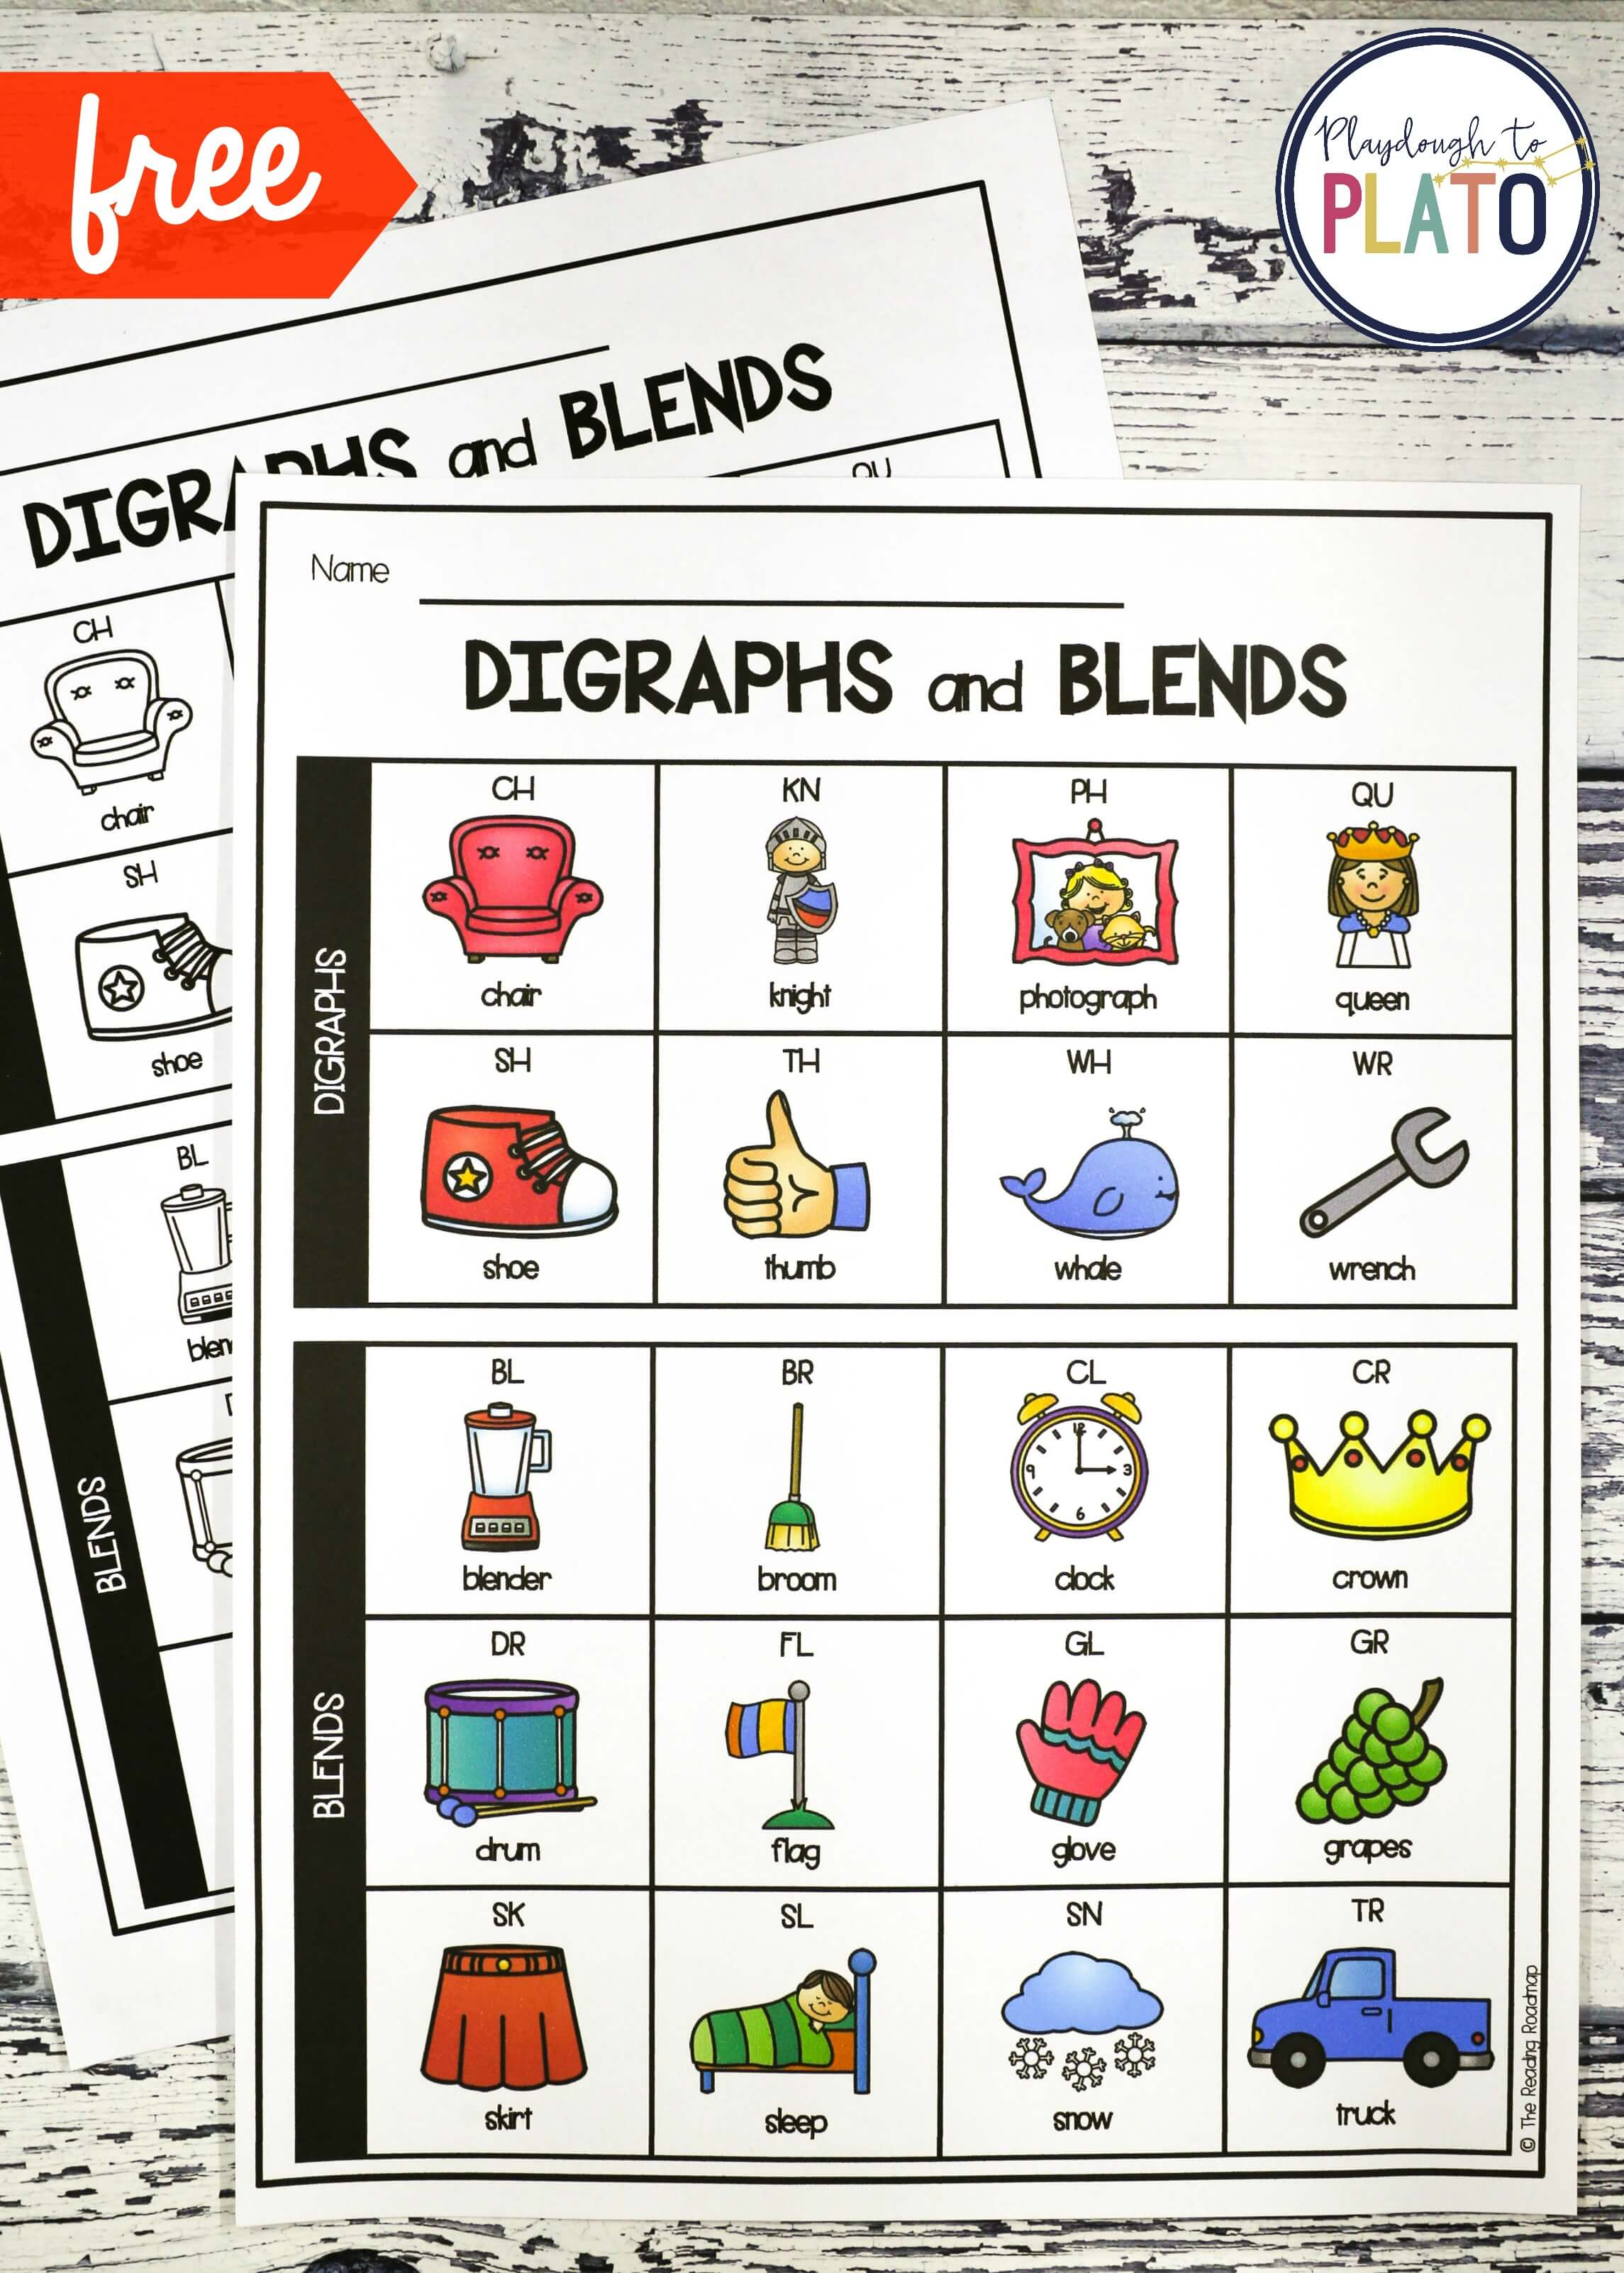 Digraph and Blend Chart - Playdough To Plato